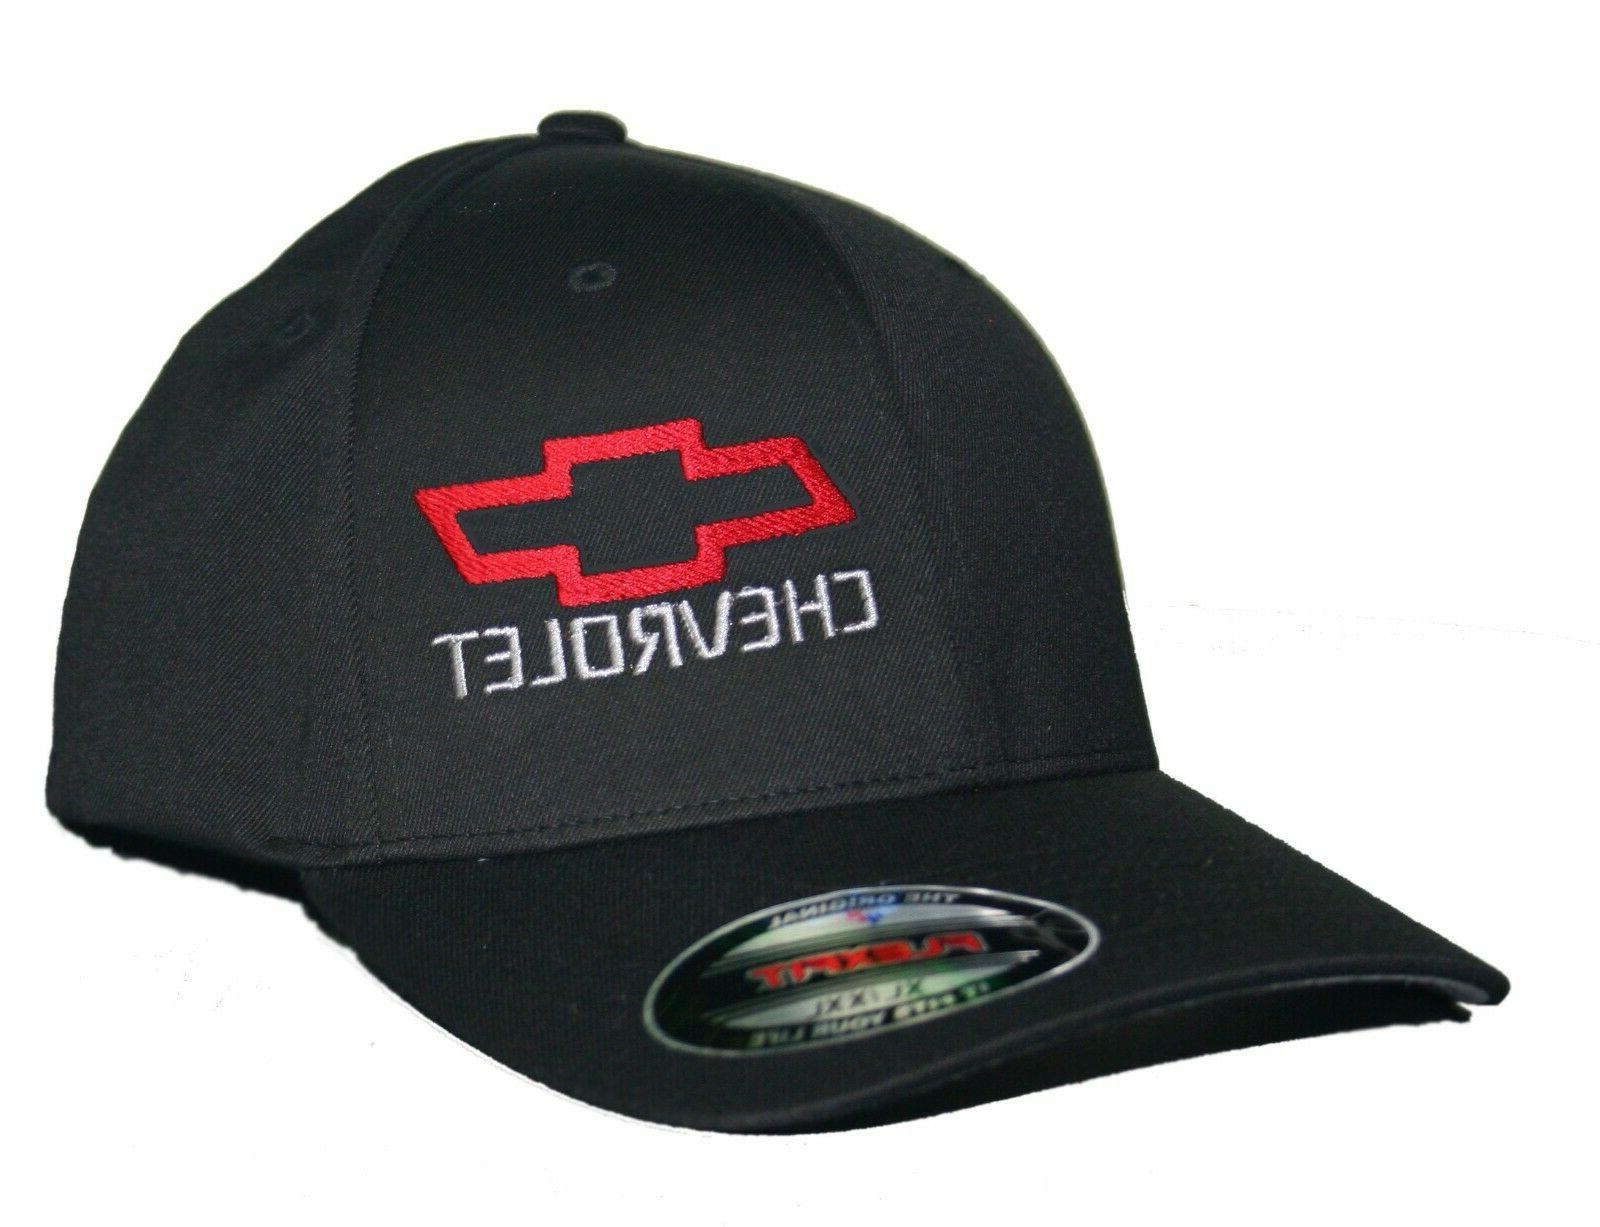 bowtie hat cap fitted curved bill chevrolet